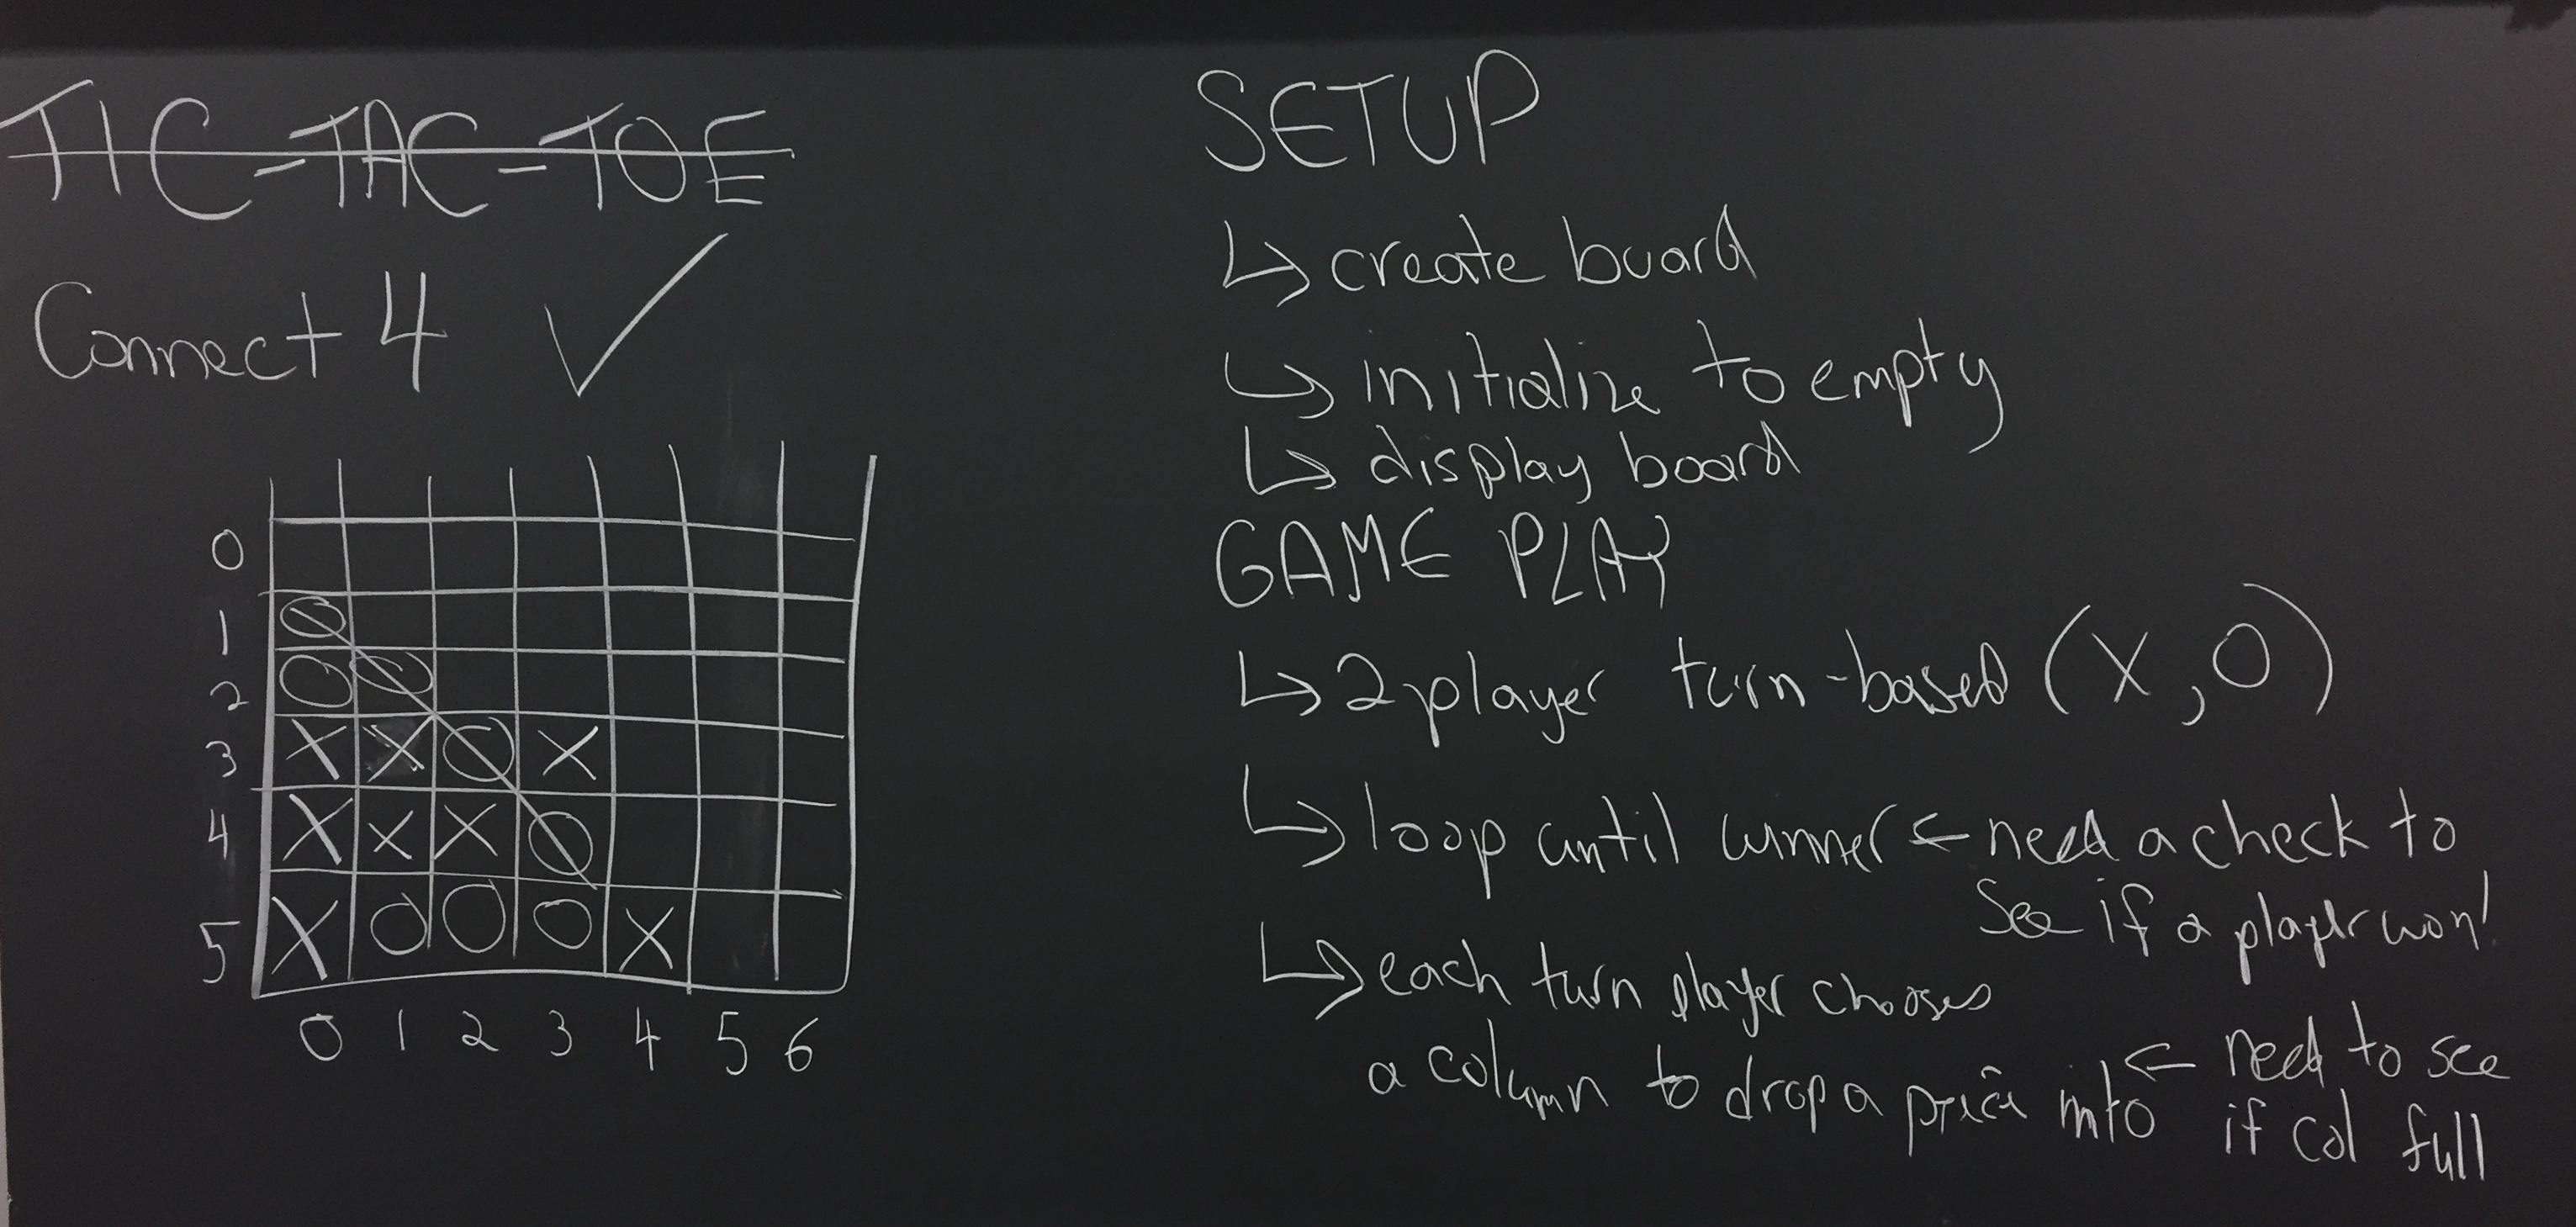 Connect 4 Planning